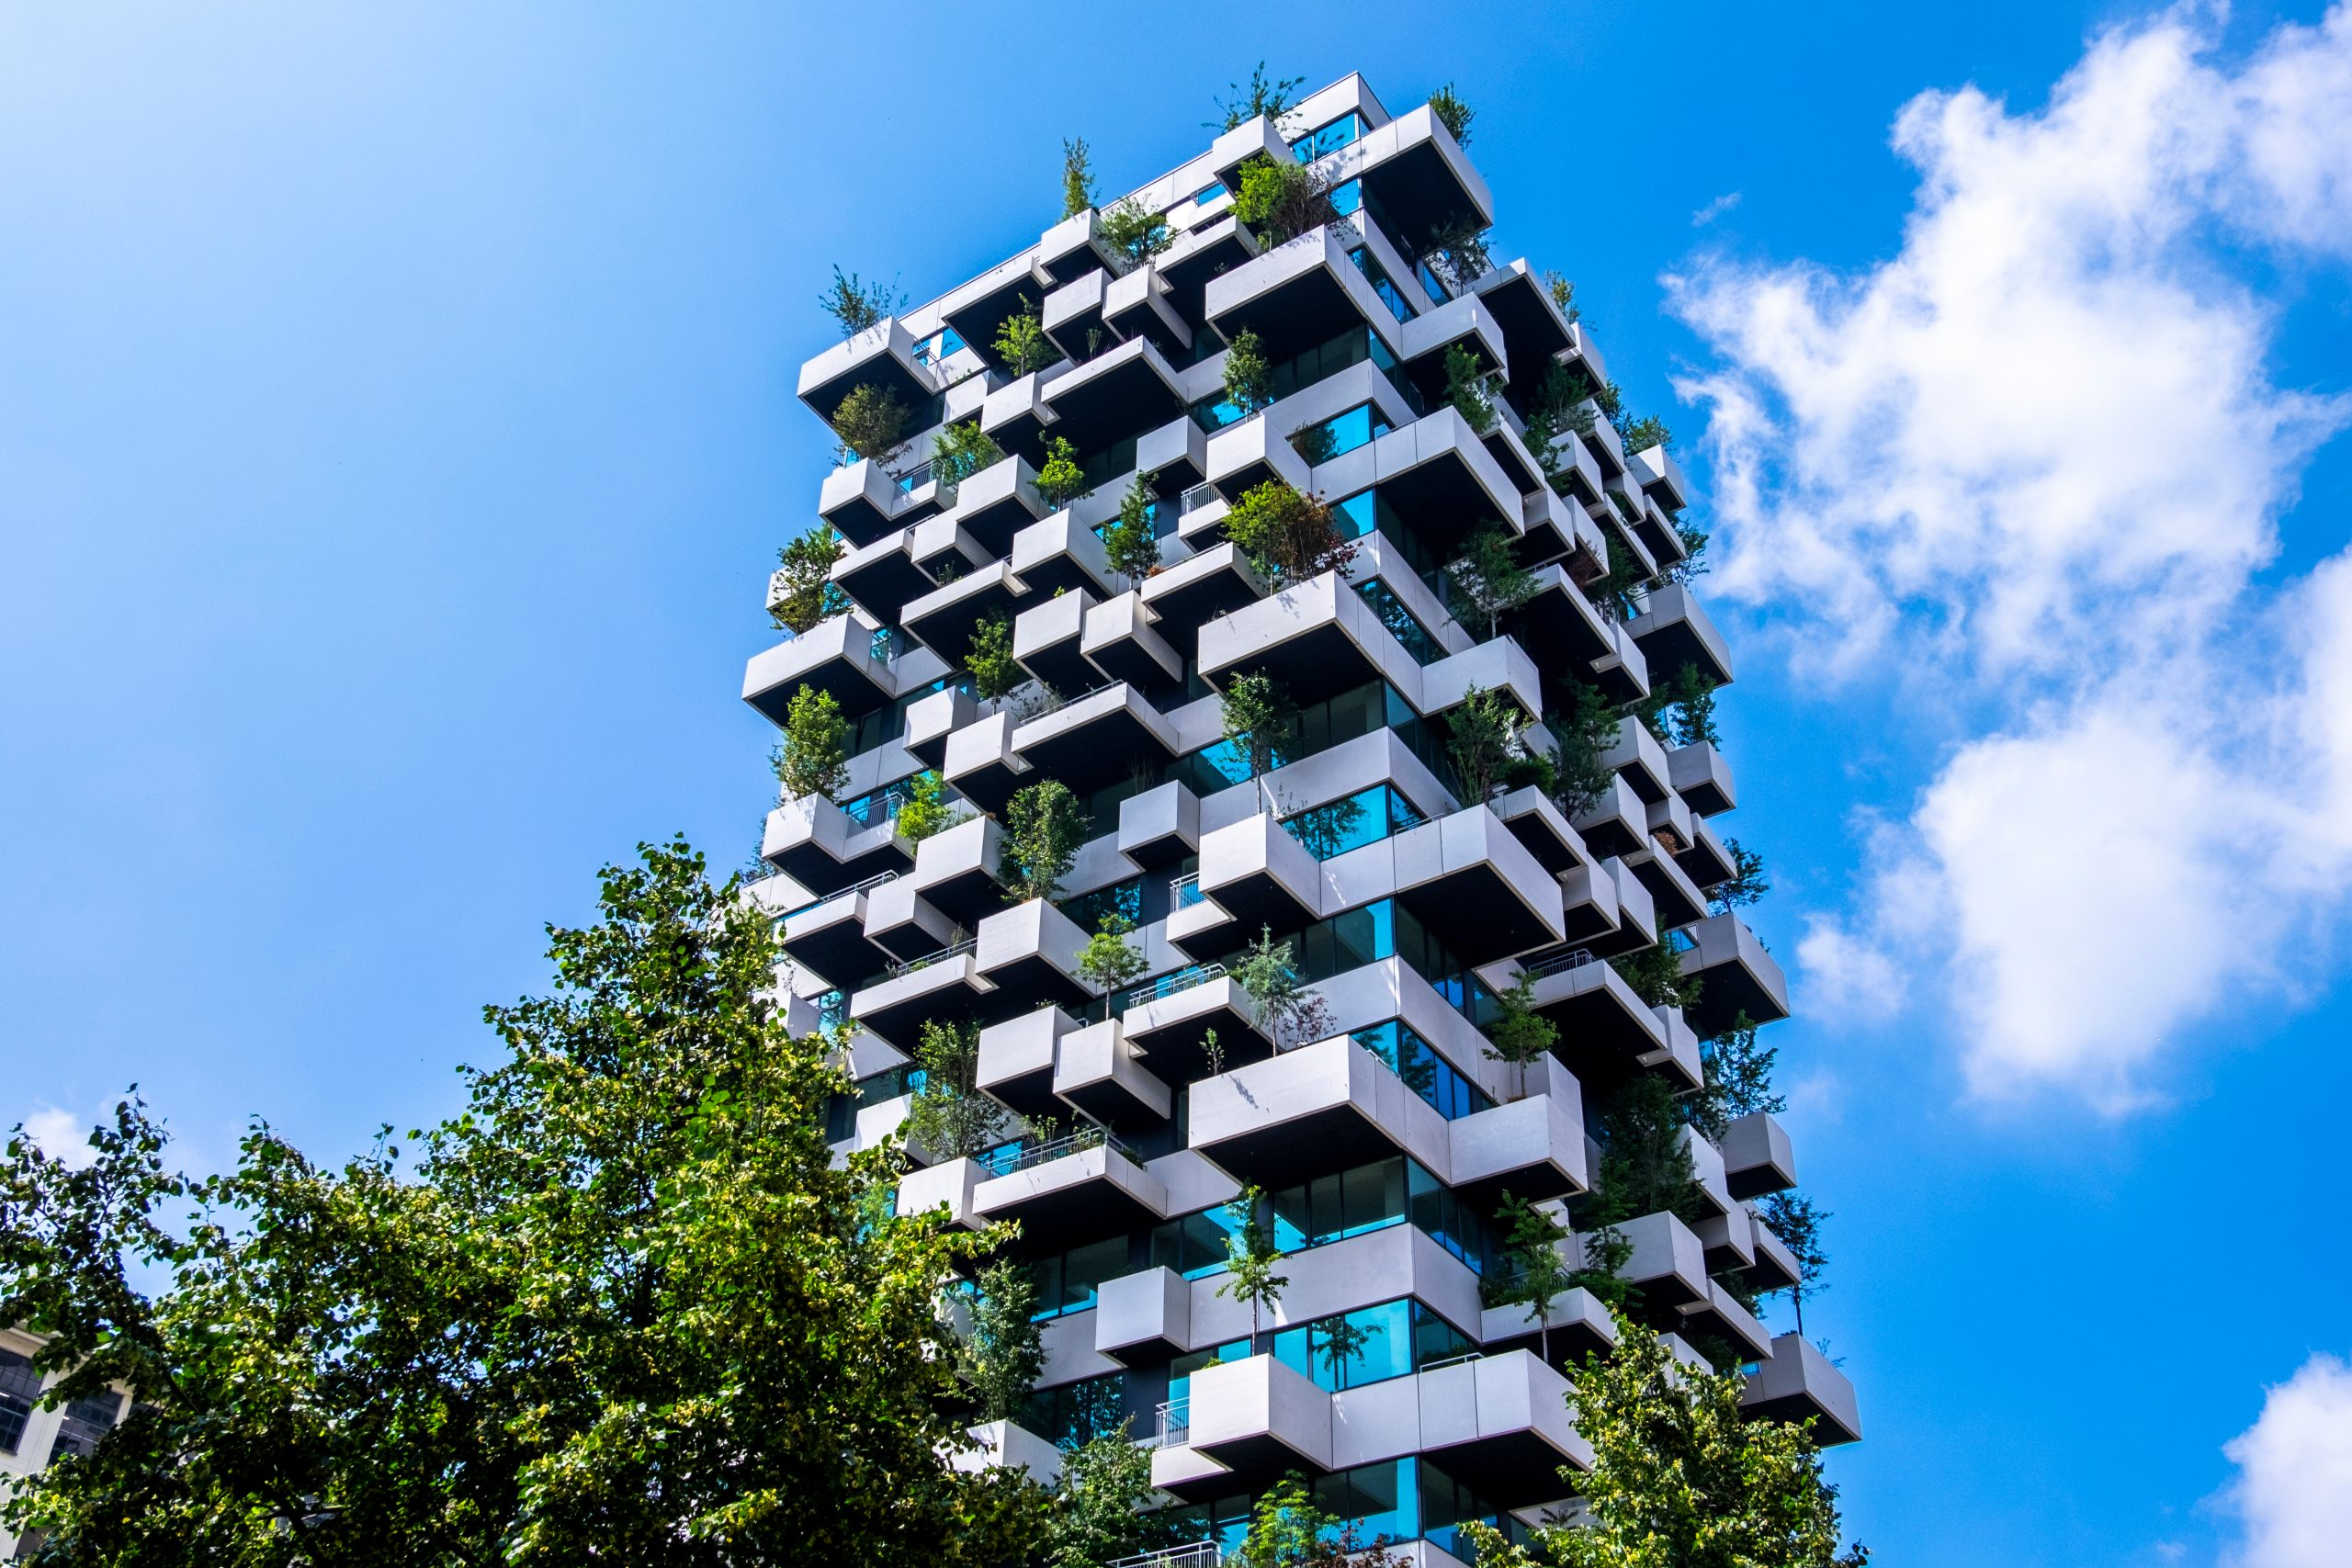 Eindhoven,,The,Netherlands,,June,29th,,2021.,Vertical,Garden,Tower,With